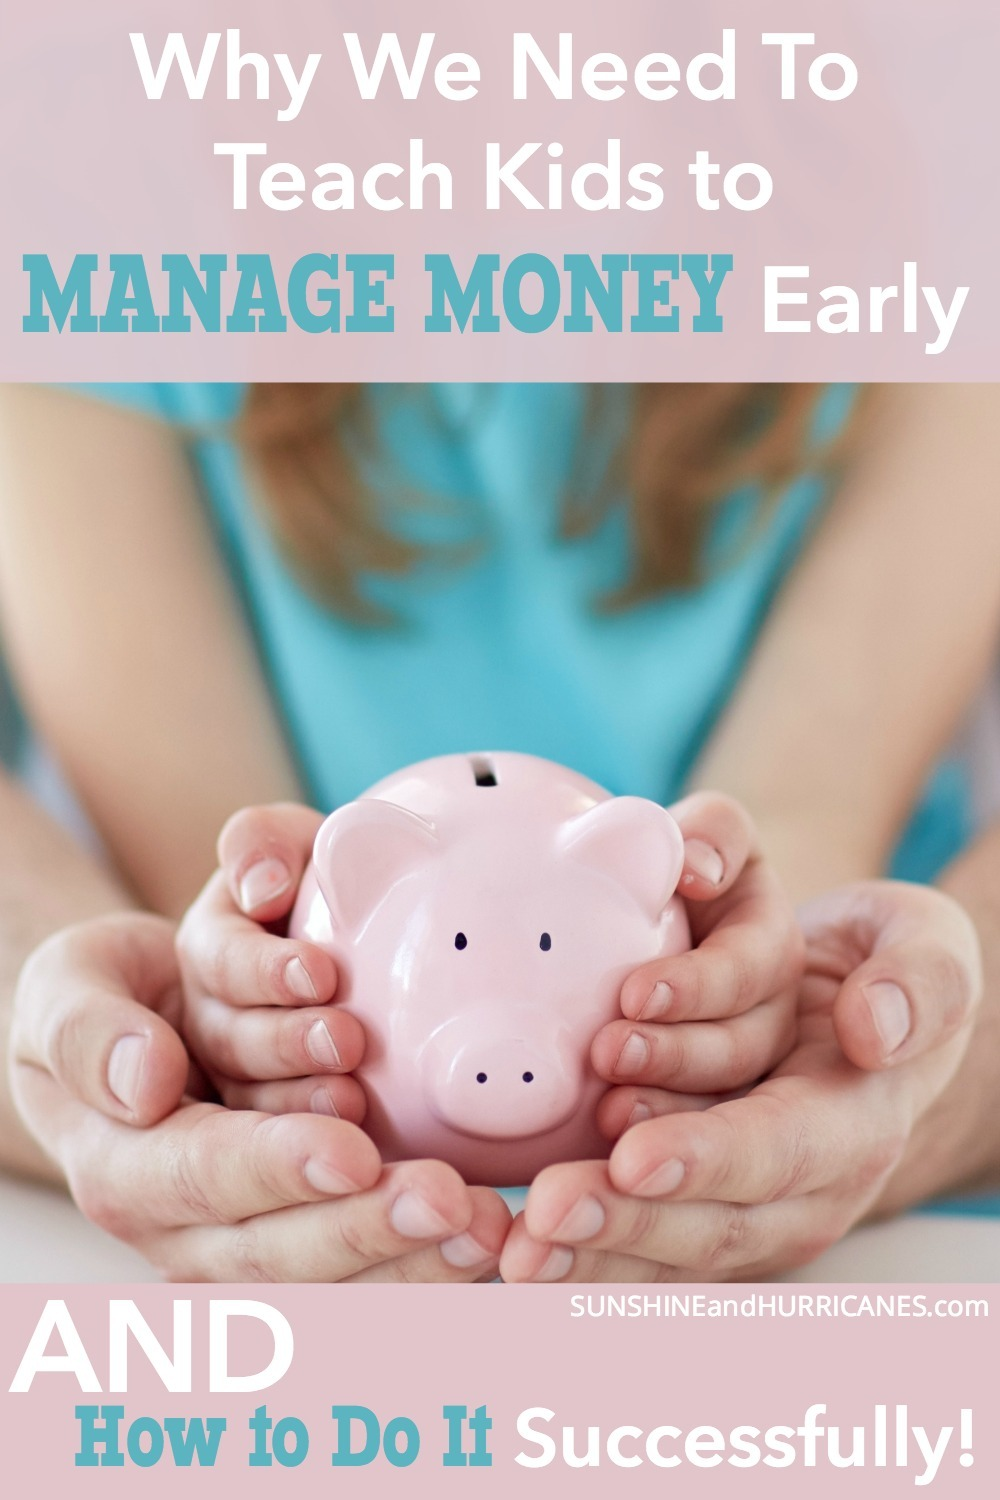 Want to raise kids who will become independent and successful adults? One of the key life skills they will need is money management. Since teaching kids to manage money is rarely done in schools it's up to parents to cover this important topic and it's easier than you think! Here is how to do it...